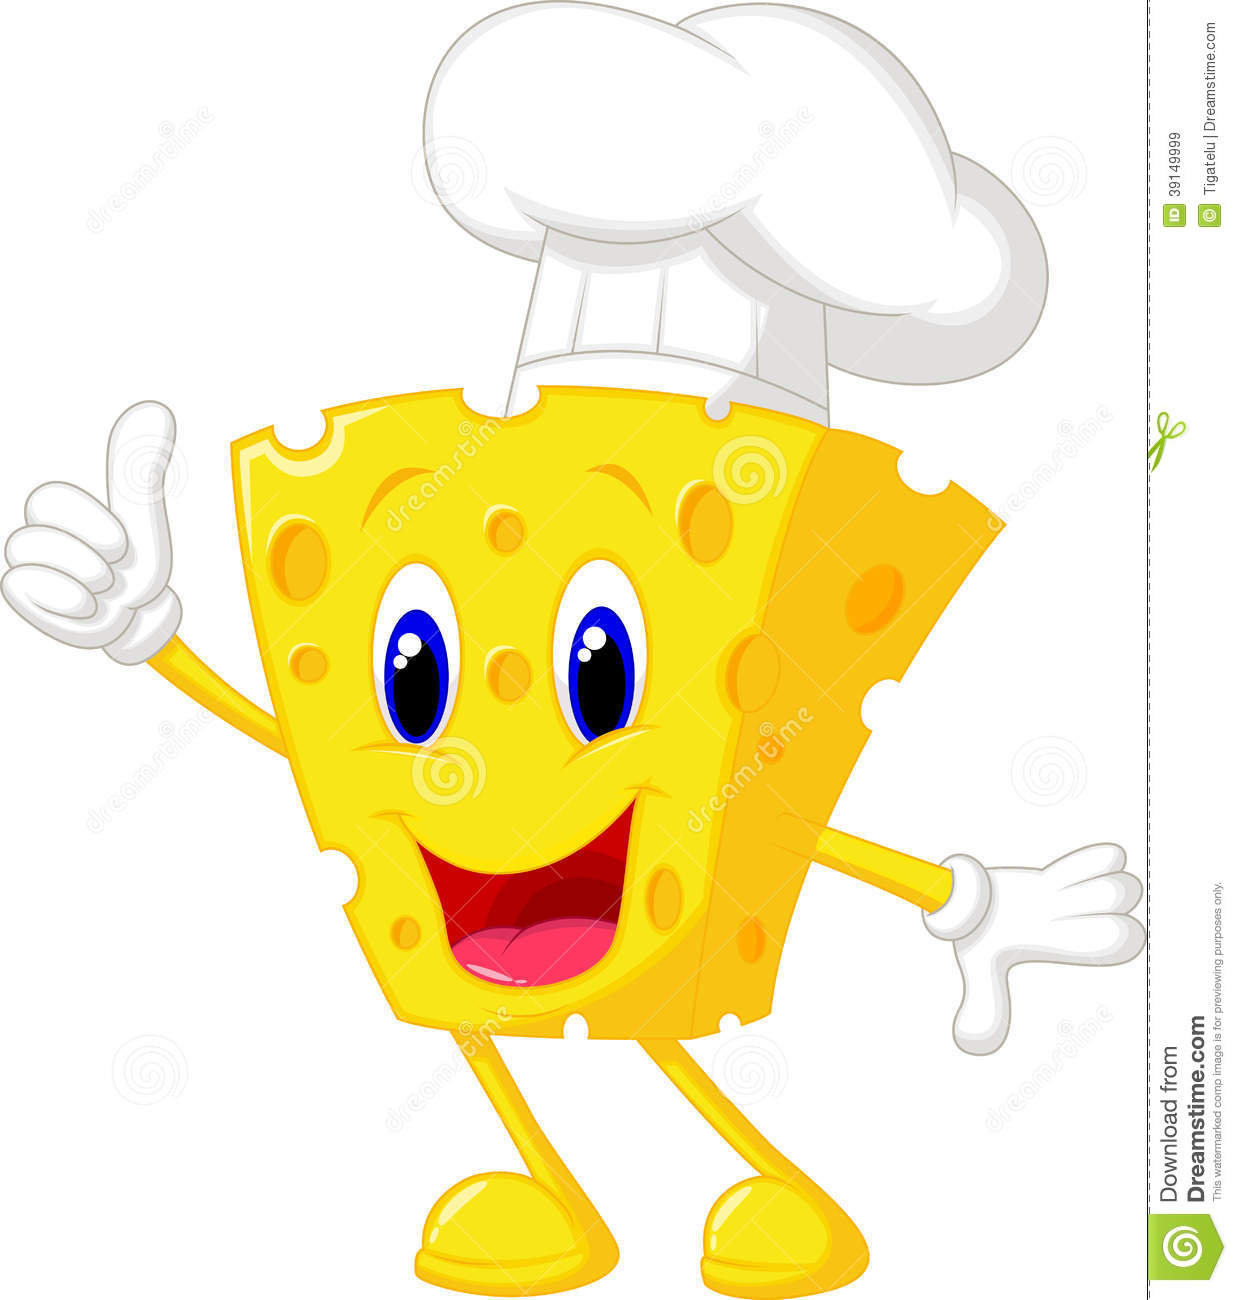 Cheese Chef Cartoon Stock Vector - Image: 39149999